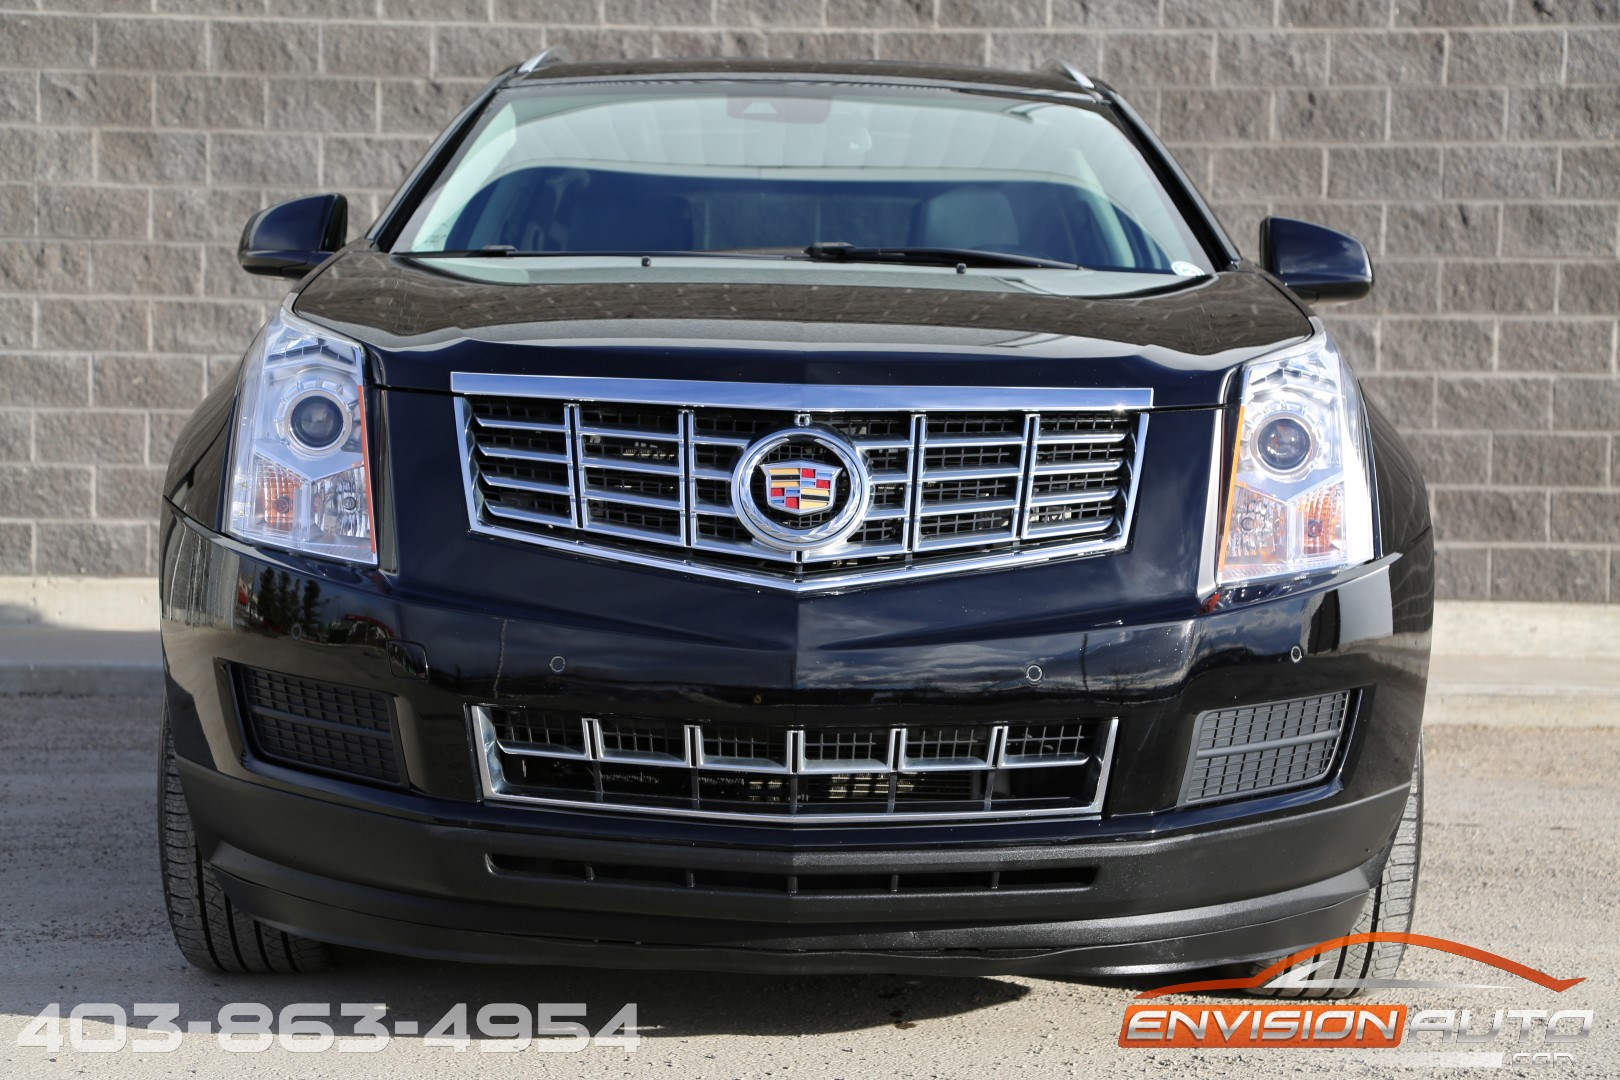 2007 cadillac srx owners manual free download